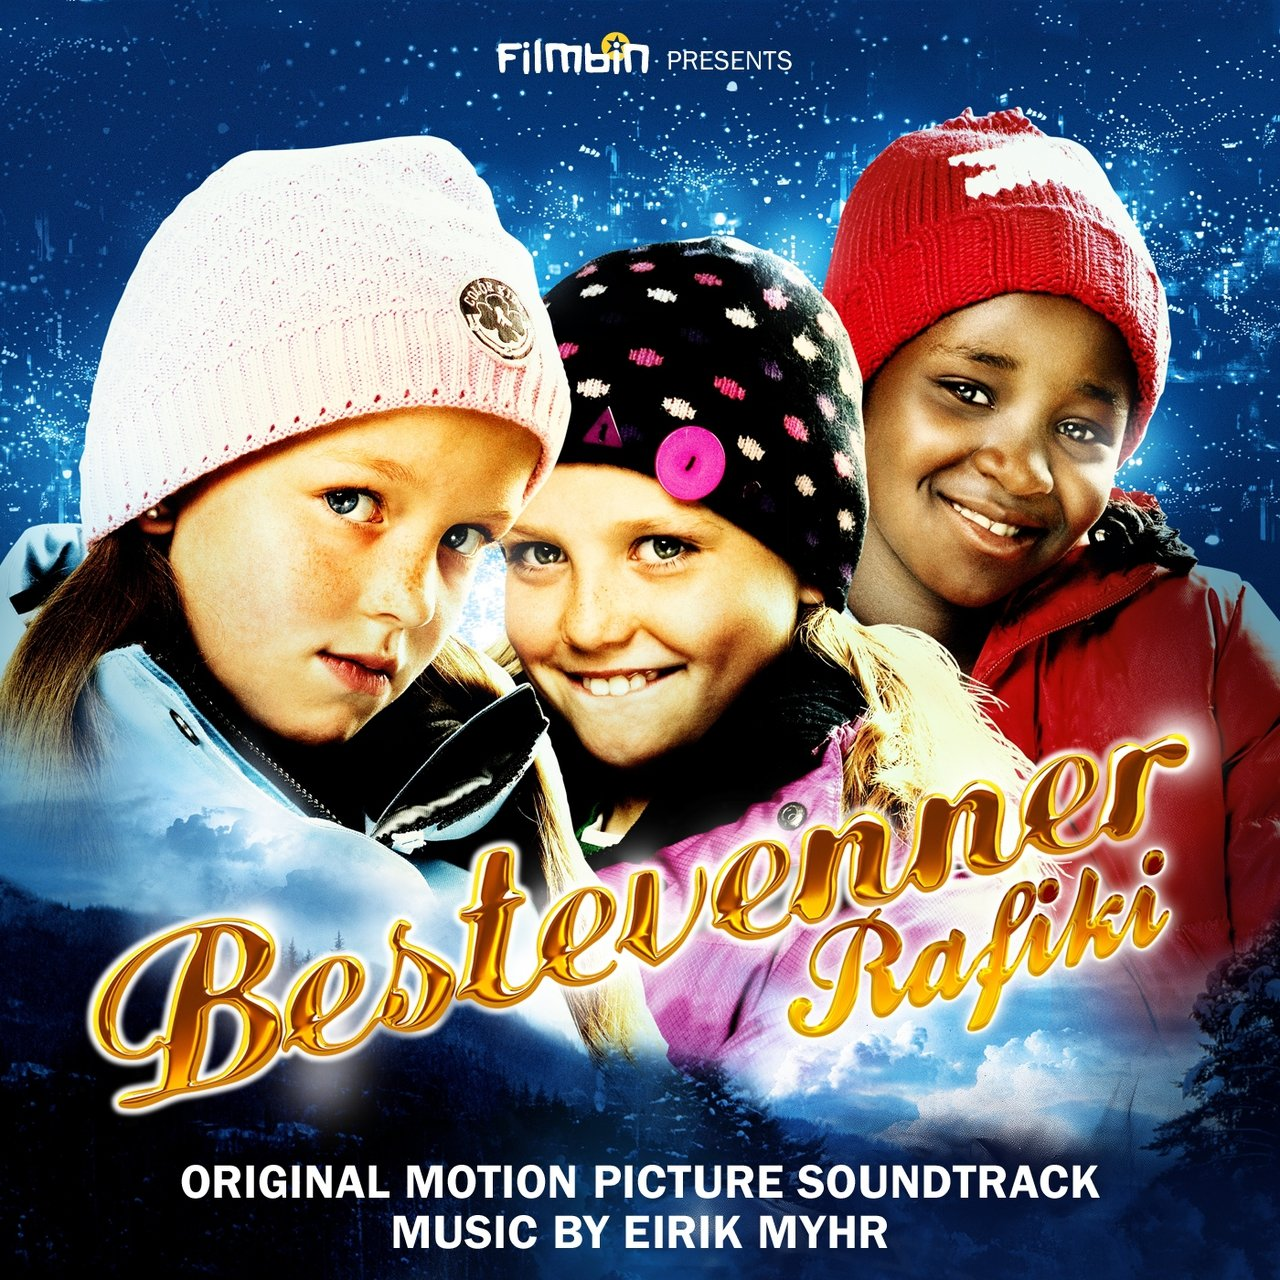 Bestevenner (Rafiki) - Original Motion Picture Soundtrack